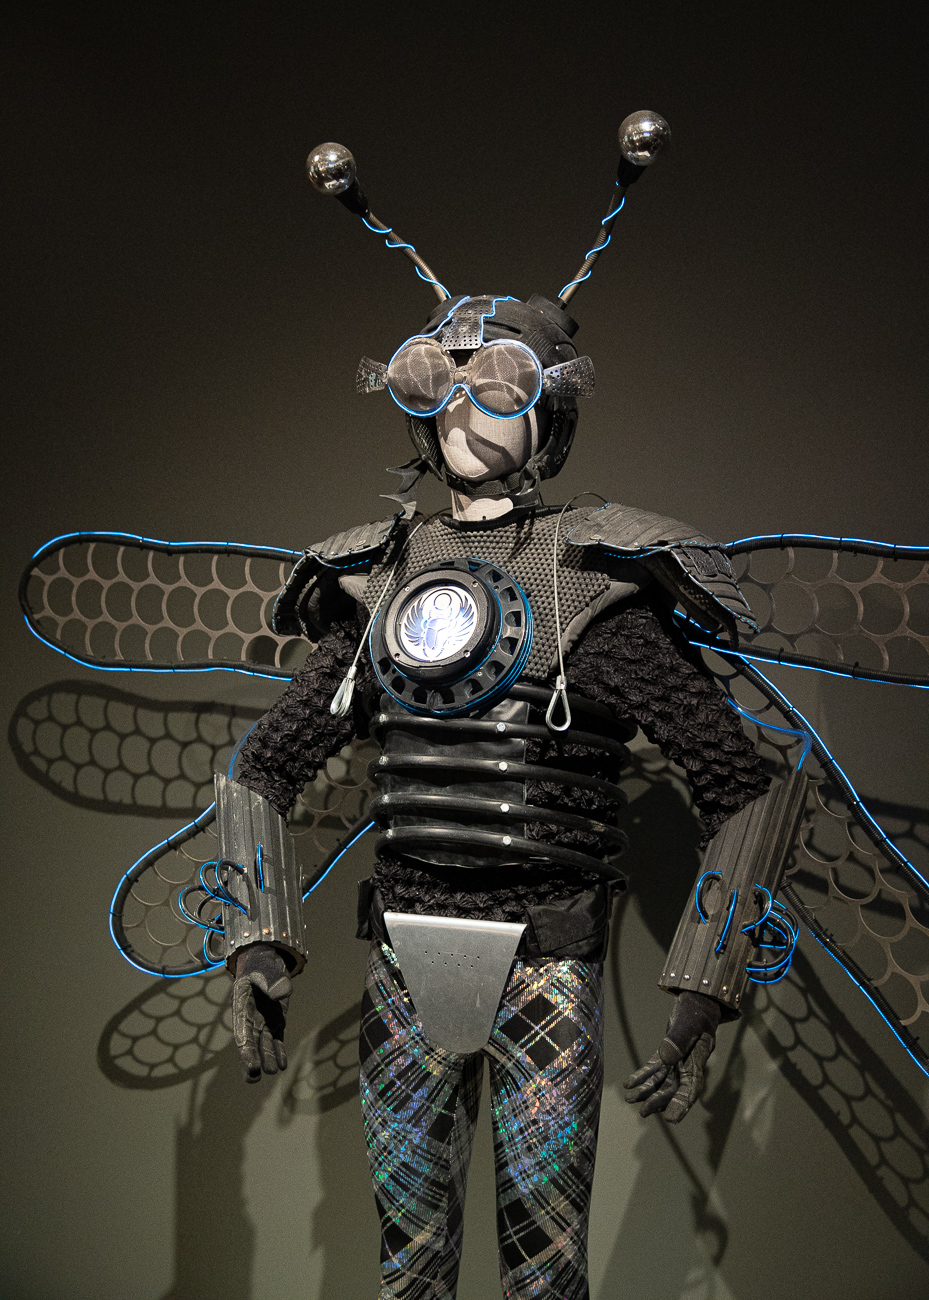 Pictured: Thorax, Ambassador of the Insects (2015-16) by Tyler FuQua / No Spectators: The Art of Burning Man, while still smoldering from its hot feature in DC's prestigious Renwick Gallery, spreads its colorful tendrils throughout two floors of the Cincinnati Art Museum from now until September 2, 2019. CAM is the only museum in the entire Midwest that's planned to receive the show, attracting spectators (despite its title) from peer cities around the country. Burning Man is a contemporary art show that gathers in the desert outside Reno, Nevada once a year. The exhibit, which pulls art from Burning Man, puts installations in various galleries throughout the museum to encourage exploration. / Image: Phil Armstrong, Cincinnati Refined // Published: 6.21.19